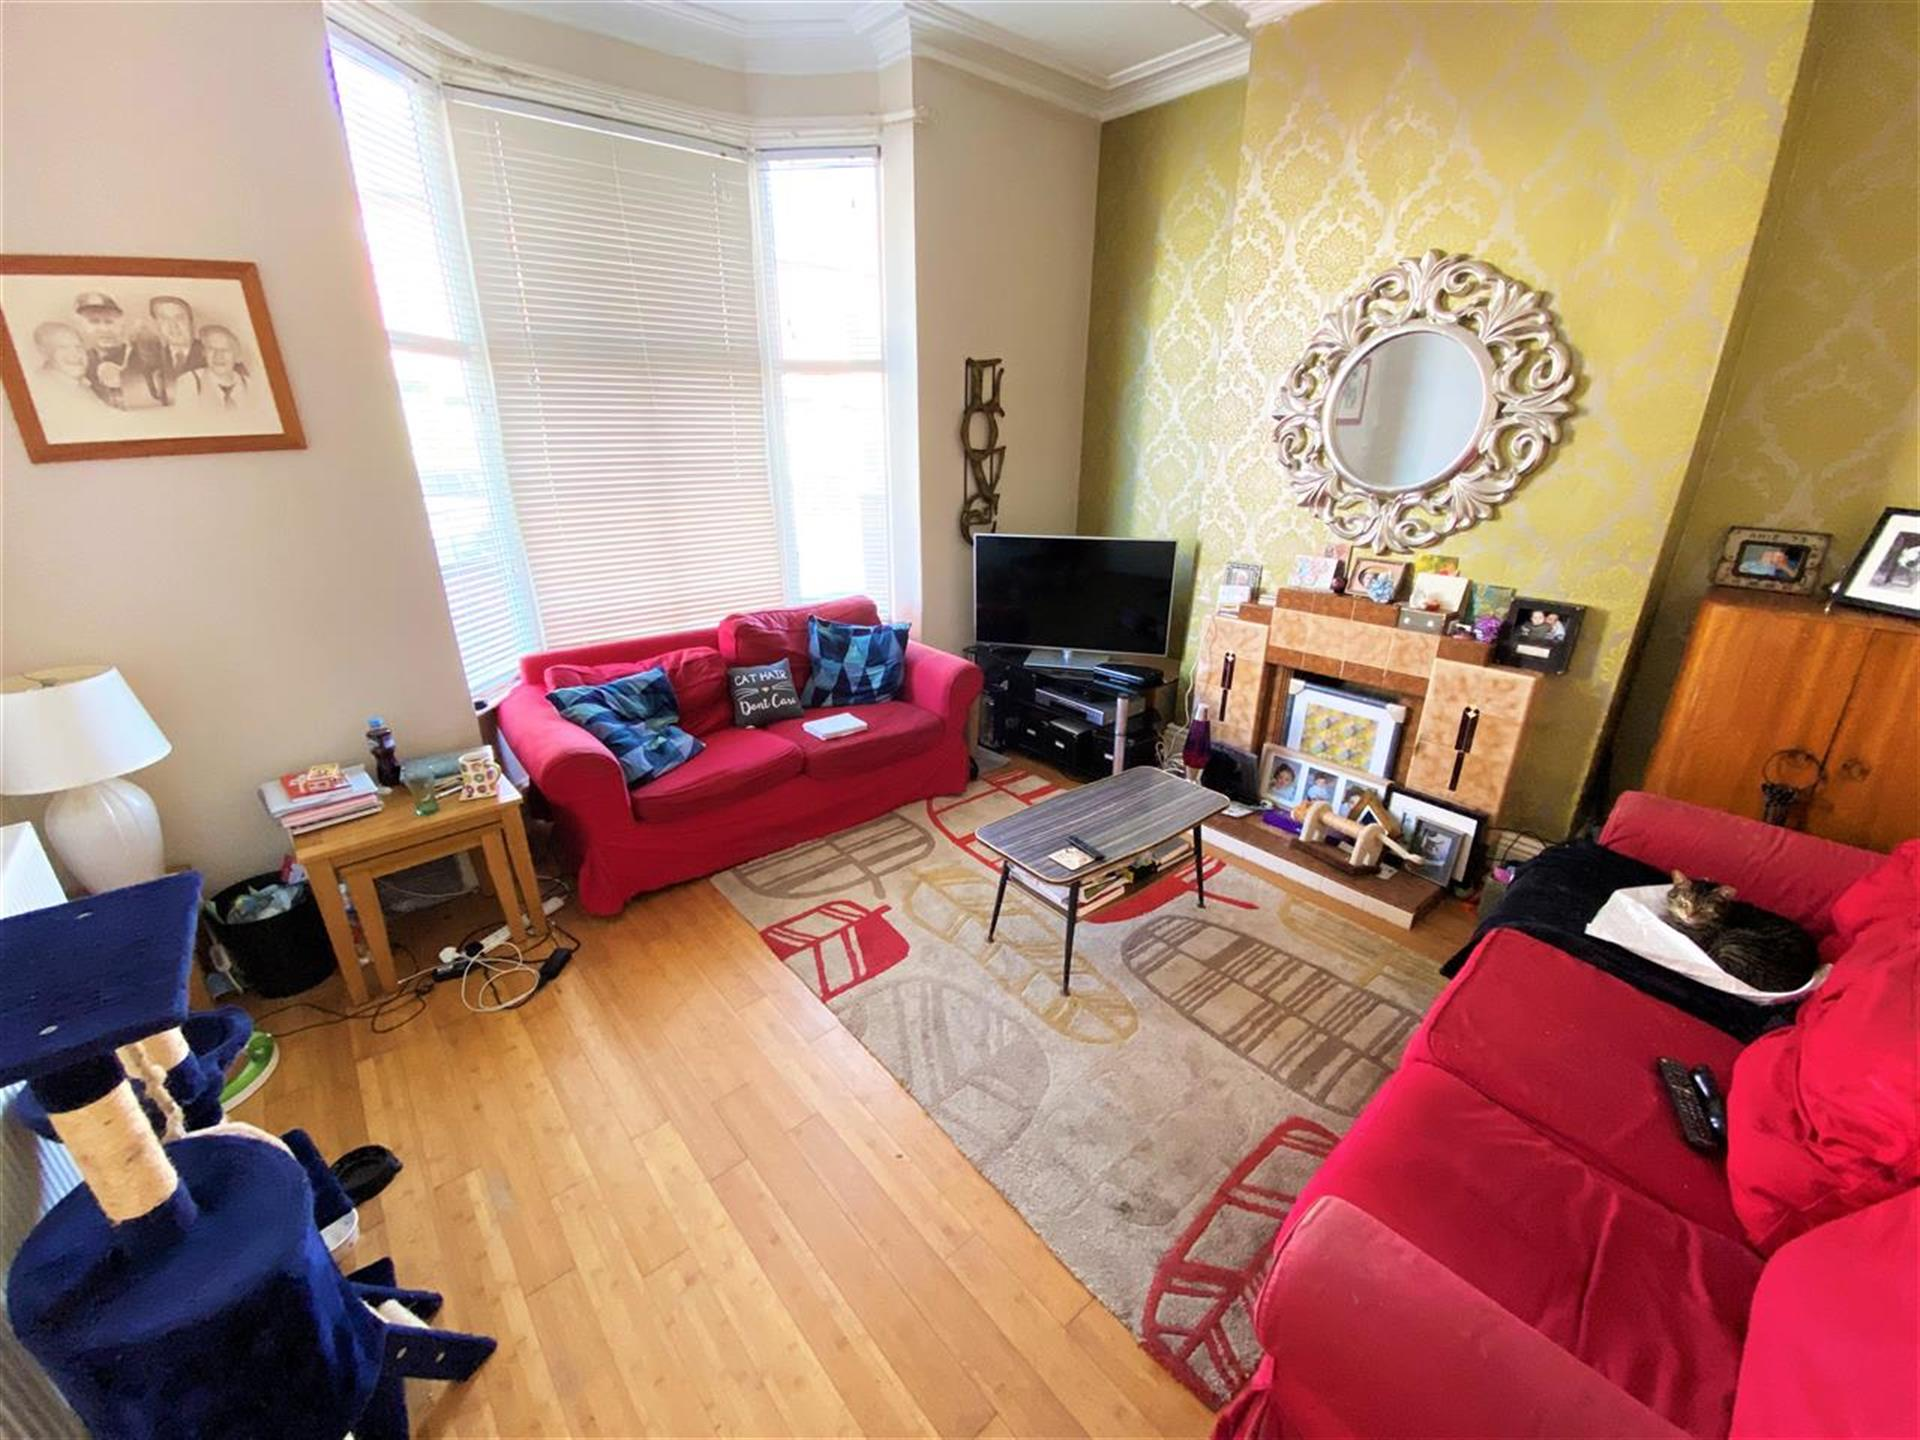 3 Bedroom Semi-detached House For Sale - Reception Room 1